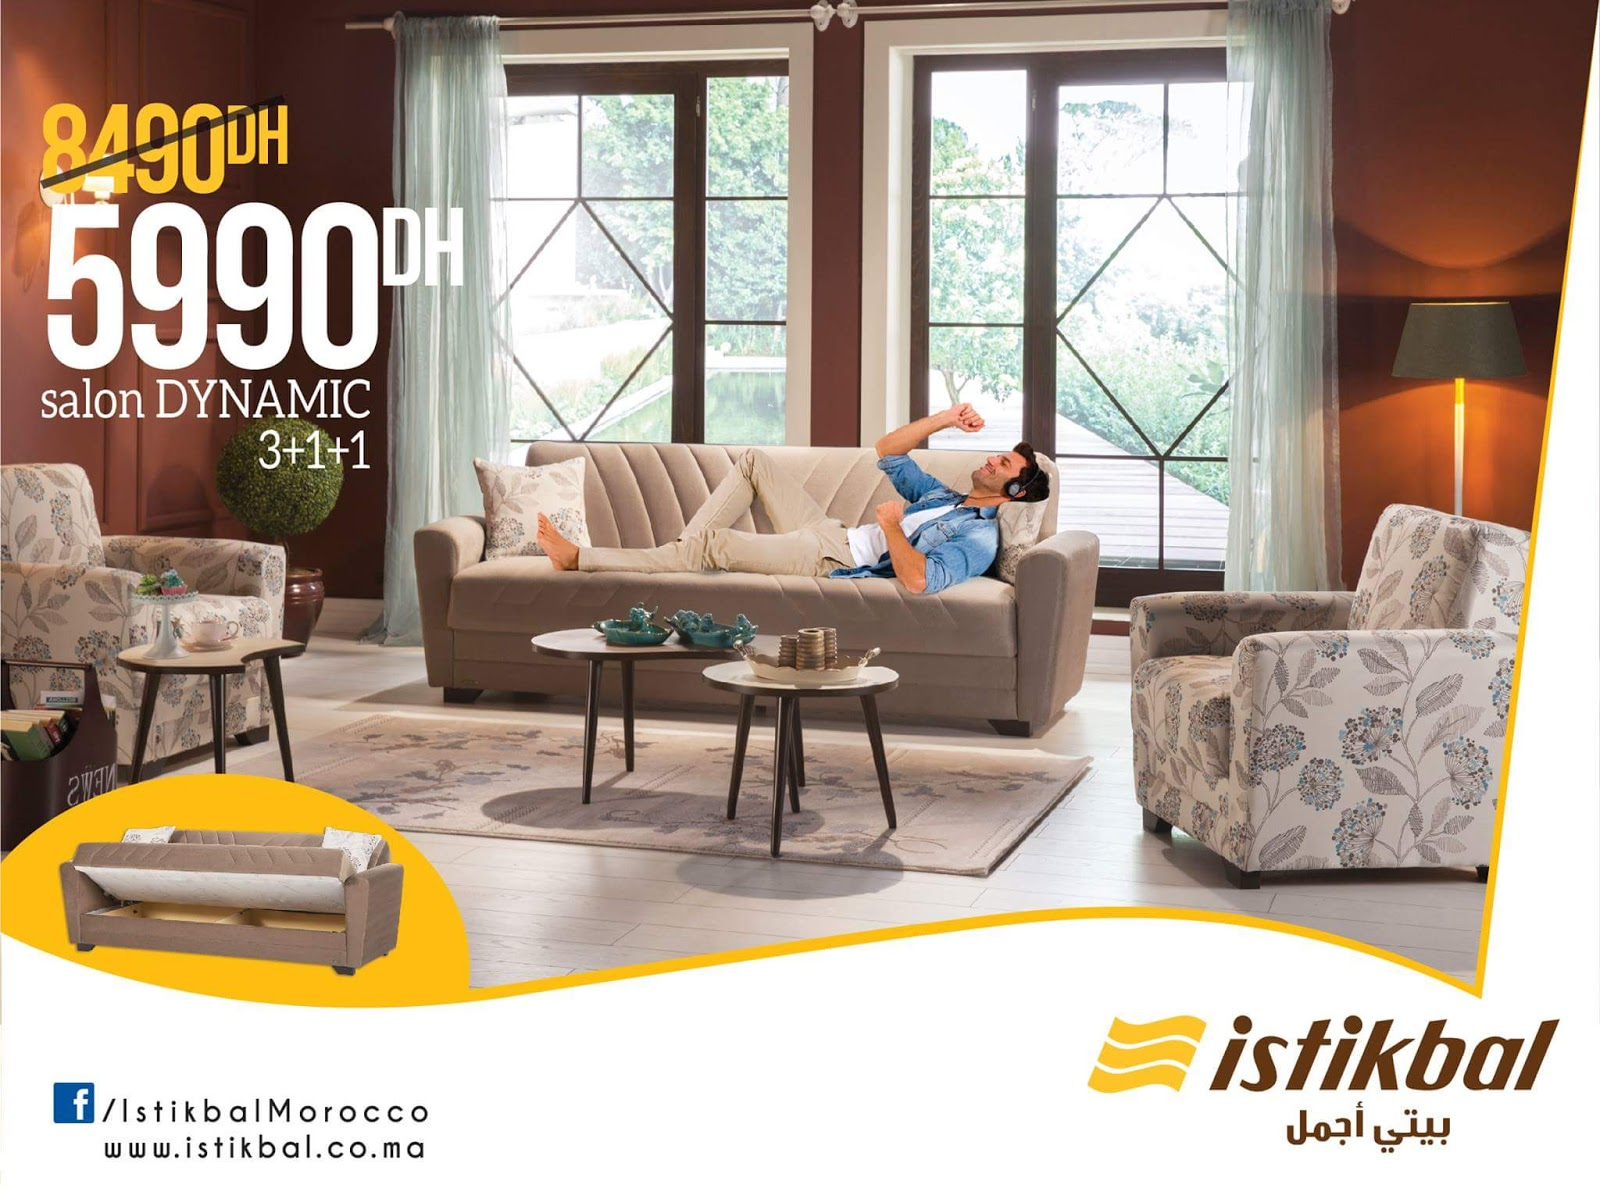 Promotion istikbal maroc printemps 2017 lecatalogue for Chambre a coucher istikbal